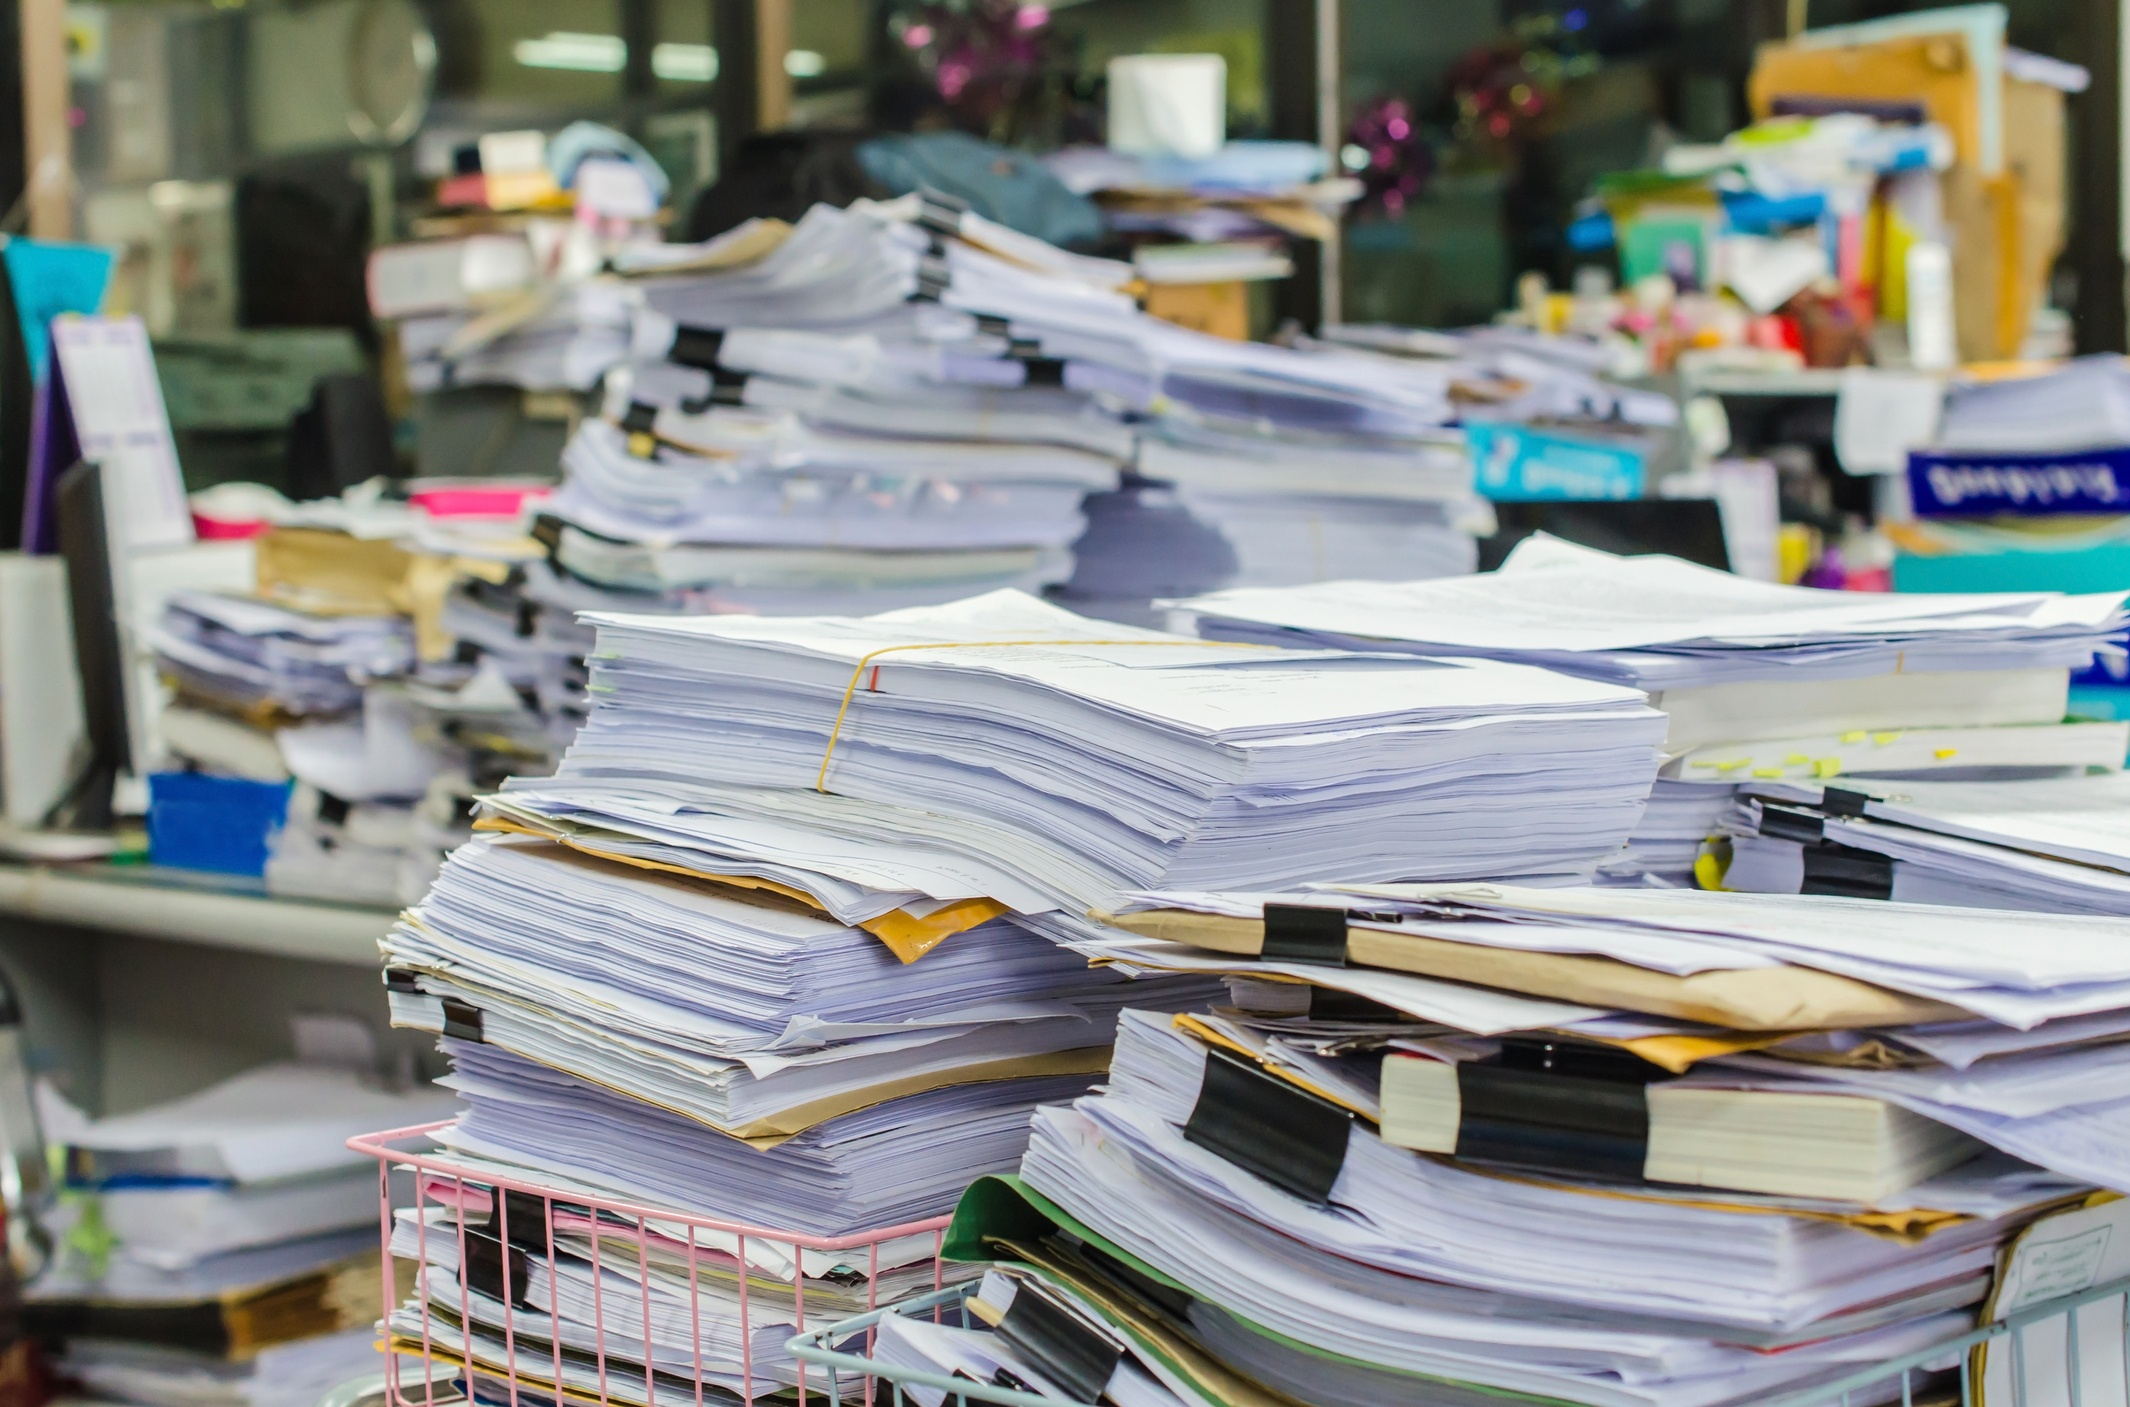 Go paperless, so you can repurpose your file room